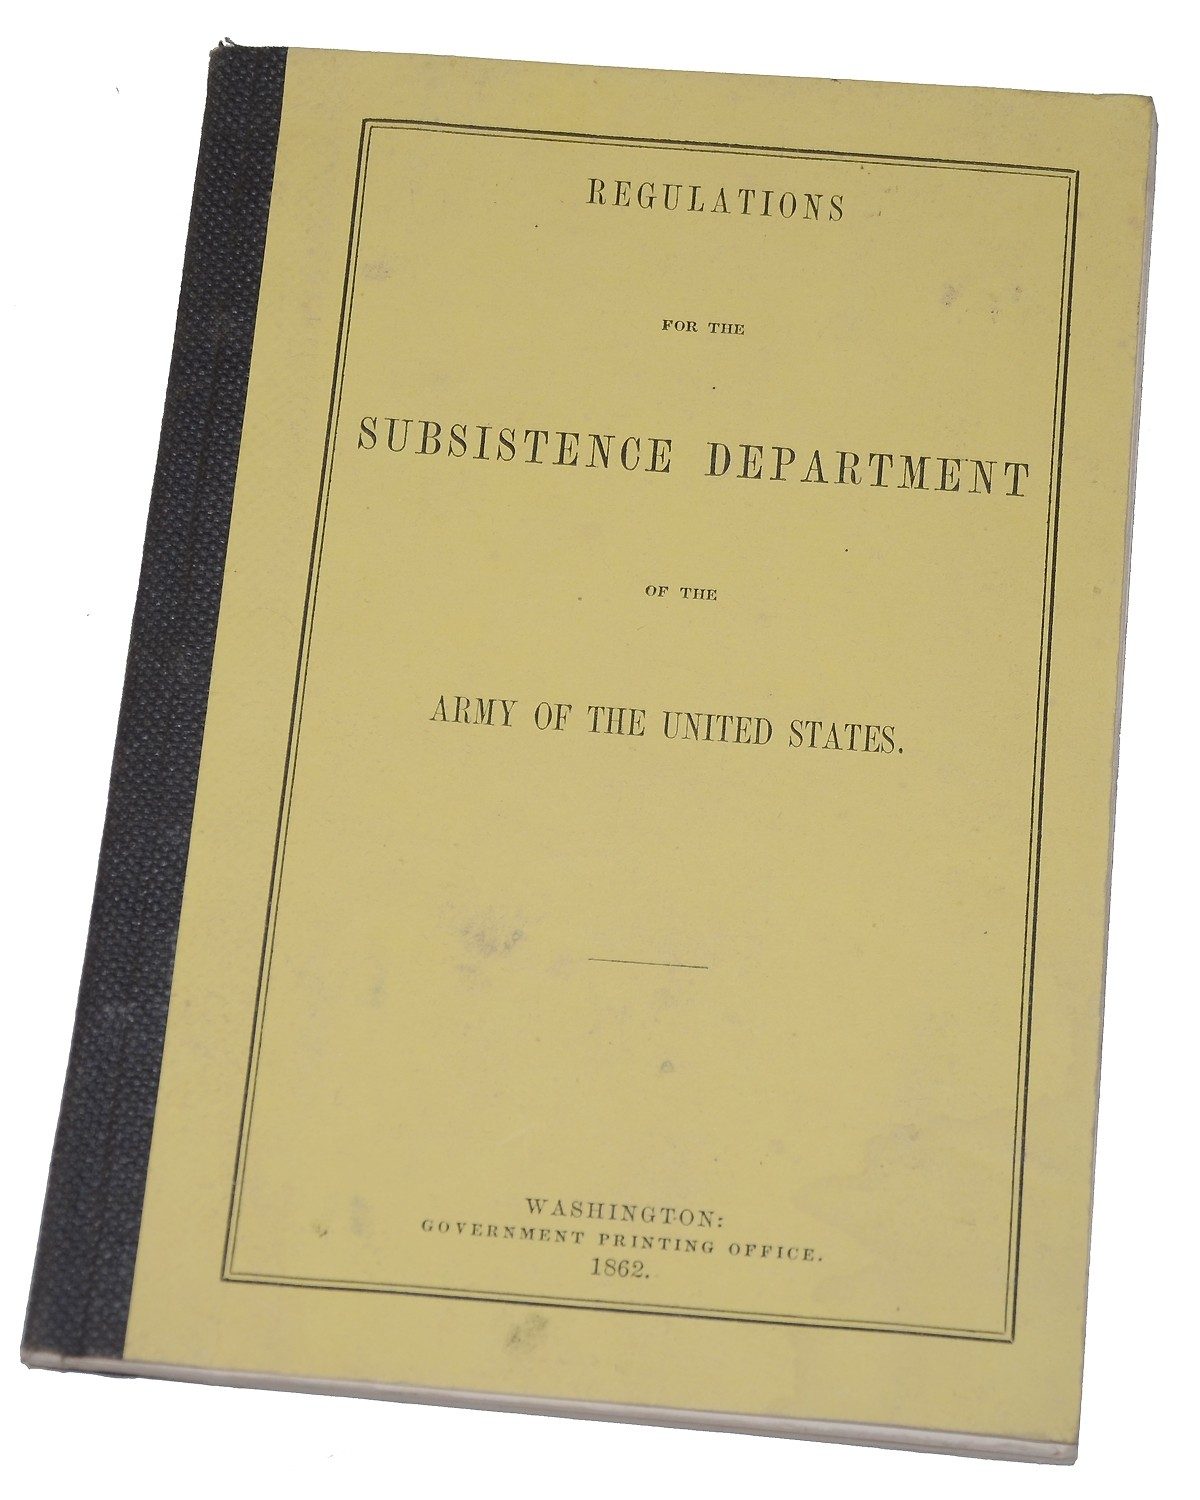 REGULATIONS FOR THE SUBSISTENCE DEPARTMENT OF THE ARMY OF THE UNITED STATES WITH STENCIL ID